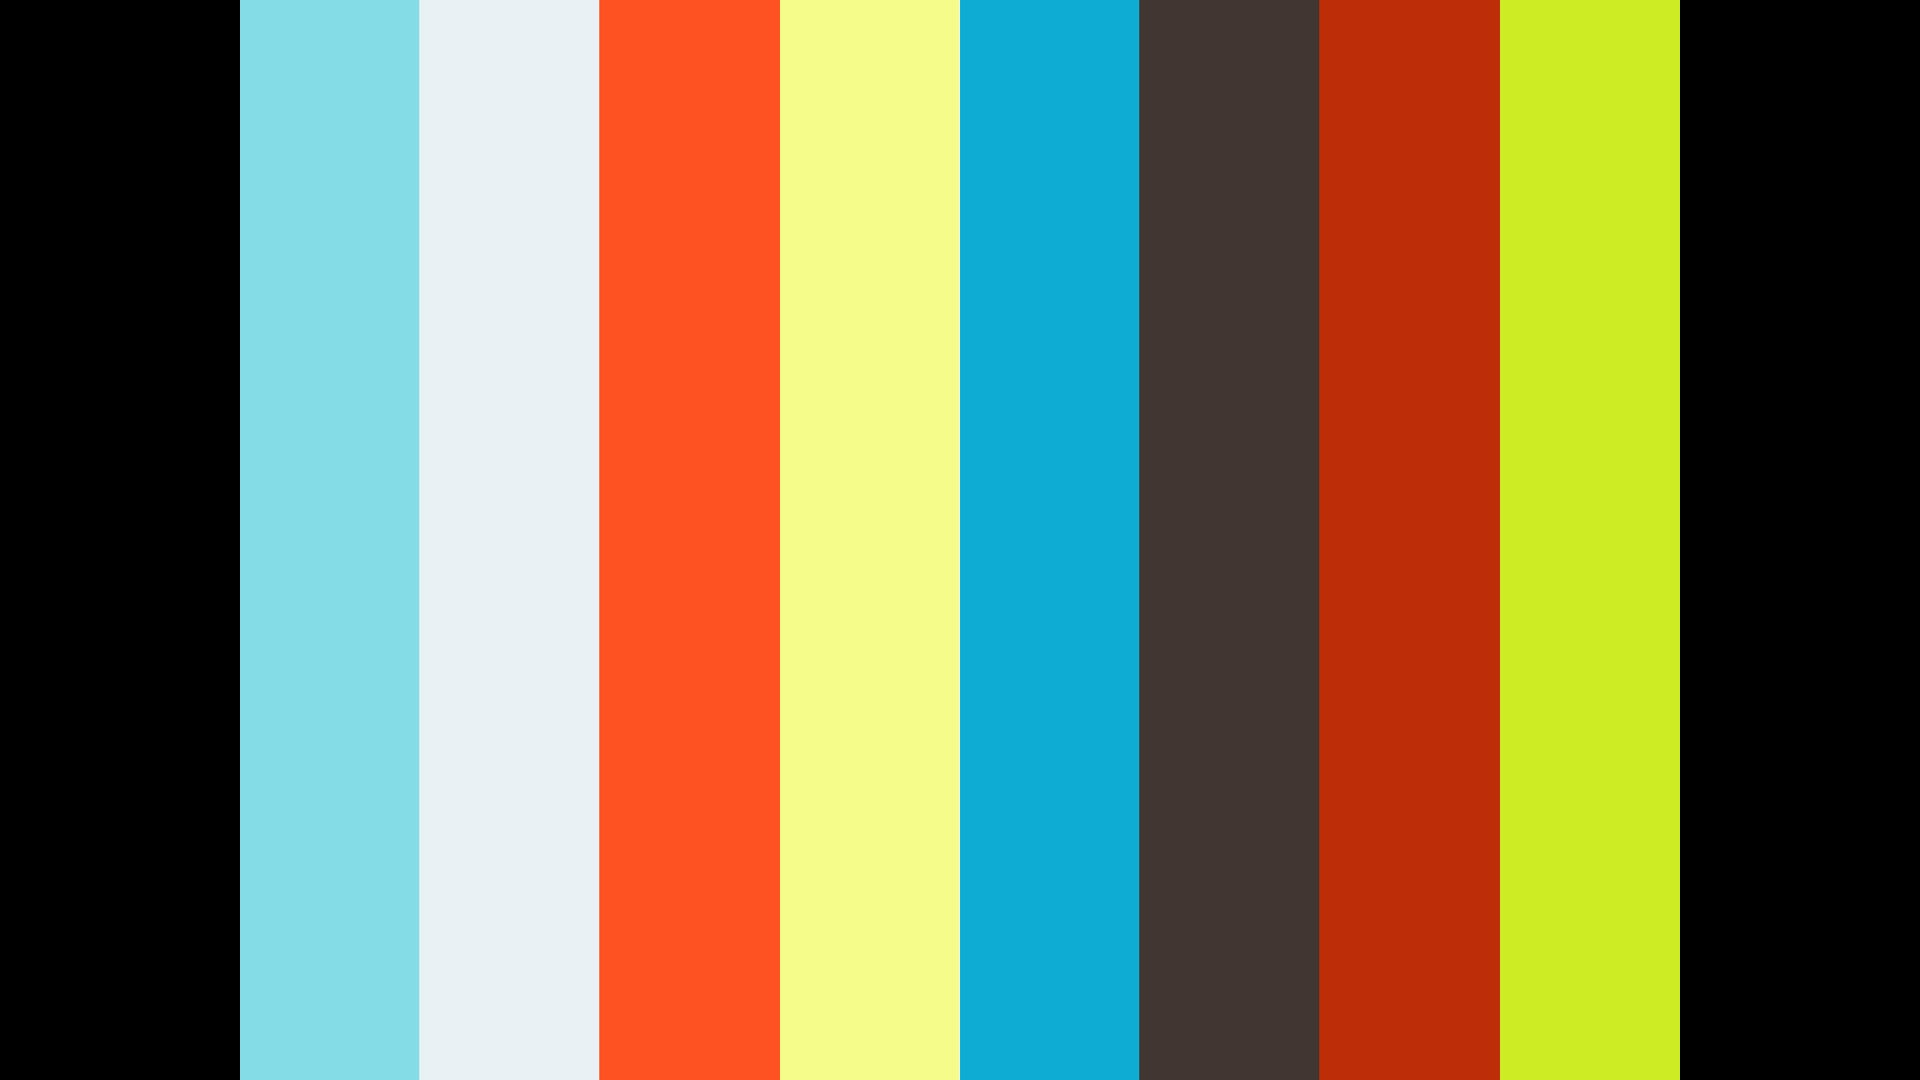 Joffrey Summer of Hip Hop - 15 sec Reel